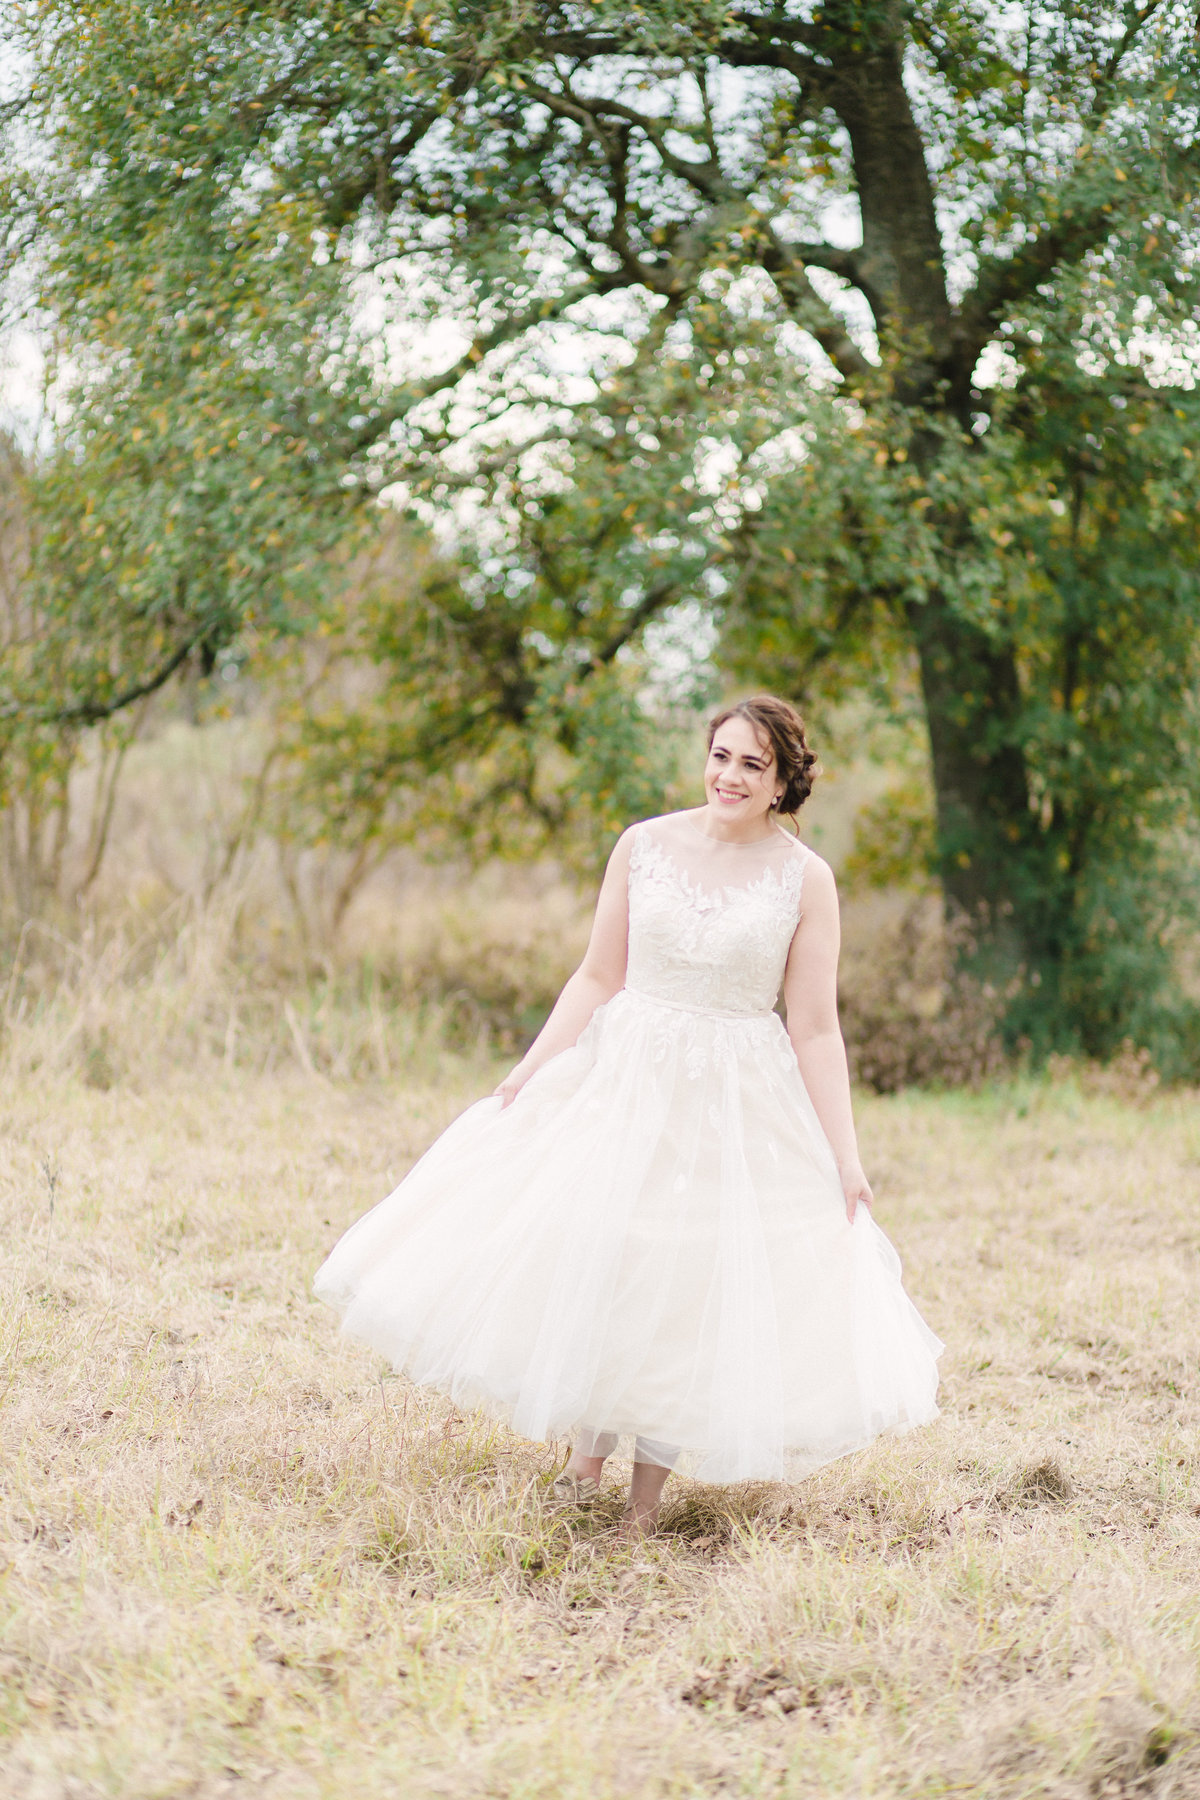 The-woodlands-bridal-session-alicia-yarrish-photography-43